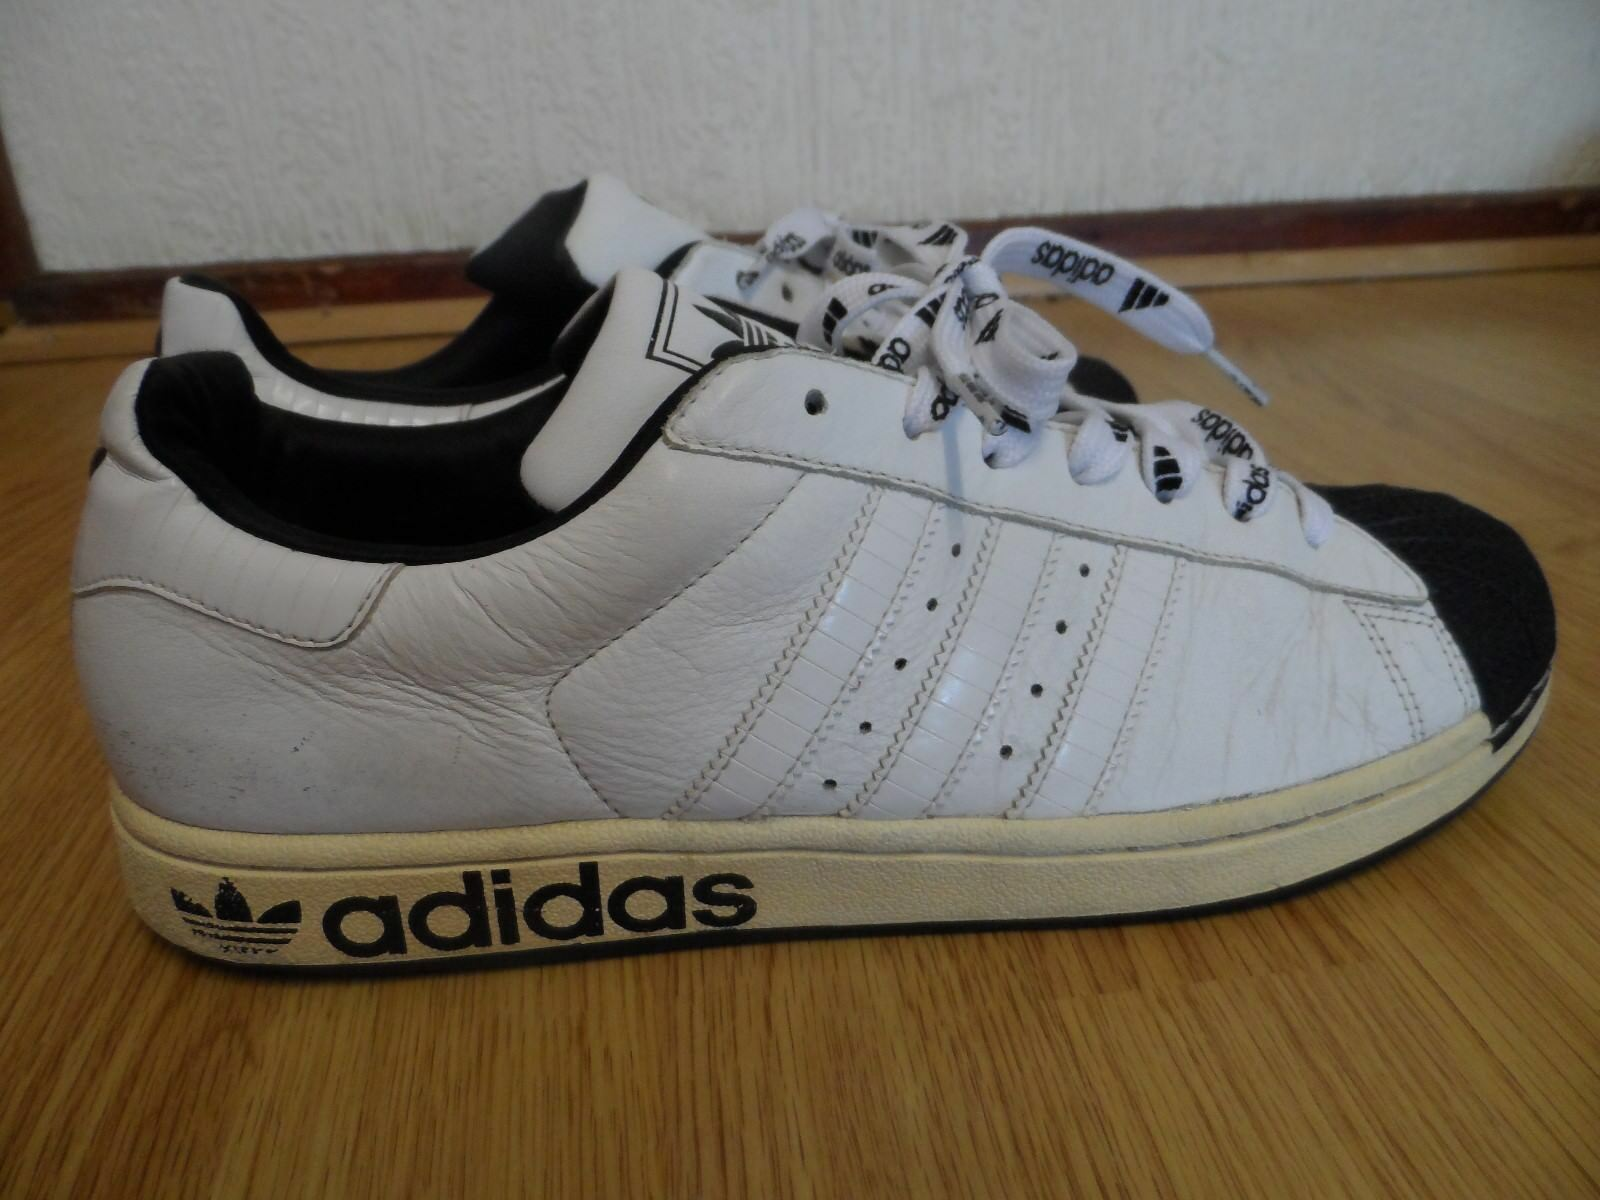 ADIDAS MENS TRAINERS SIZE UK 10   EUR 44 MADE IN INDONESIA